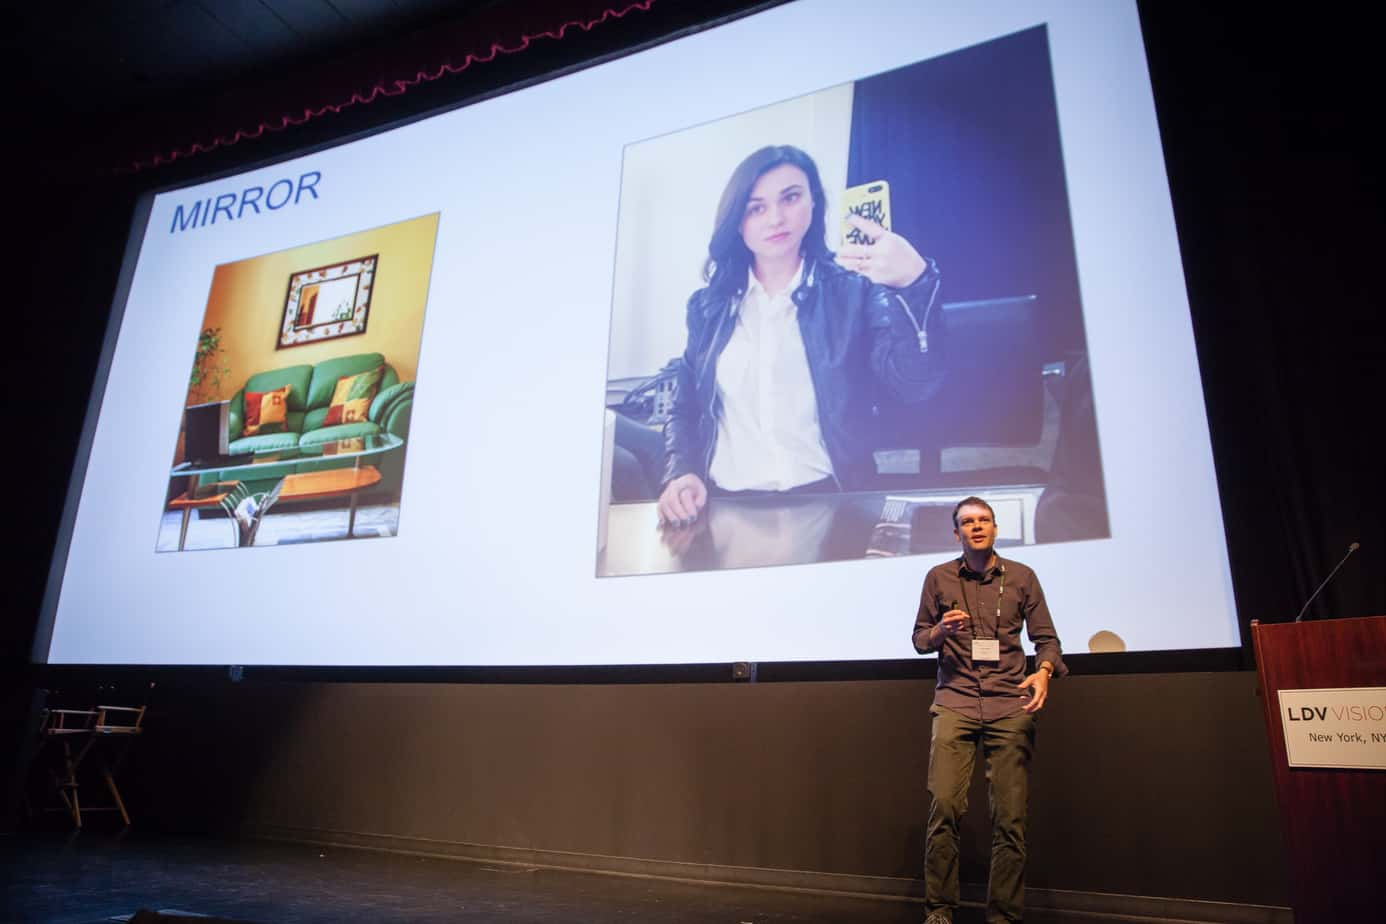 Larry Zitnick from Facebook explains how mirrors are a difficult task for visual recognition engines and what we need to do to solve it. ©Robert Wright/LDV Vision Summit